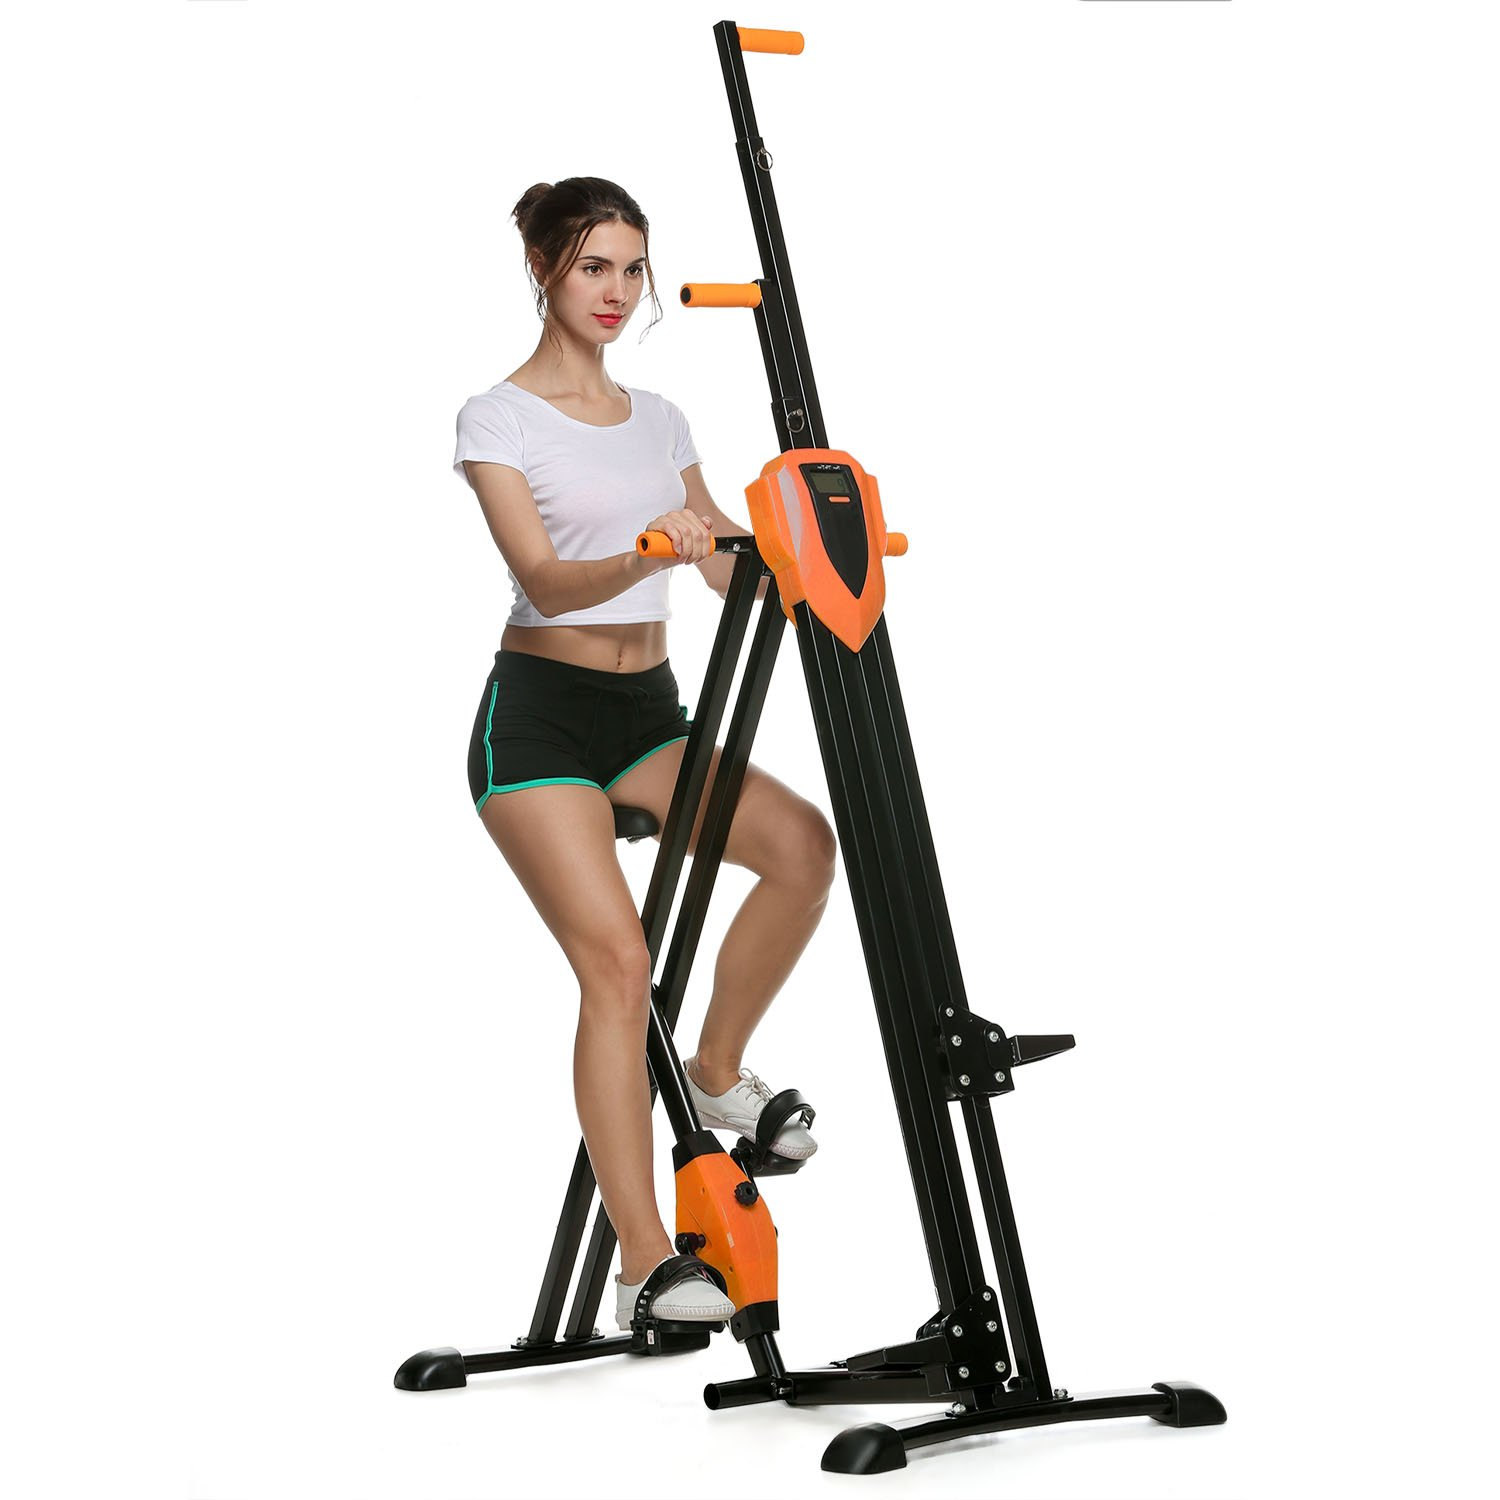 ANCHEER Vertical Climber Folding Exercise Climbing Machine, Exercise Equipment Climber for Home Gym, Exercise Bike for Home Body Trainer (US Stock) (Orange by ANCHEER